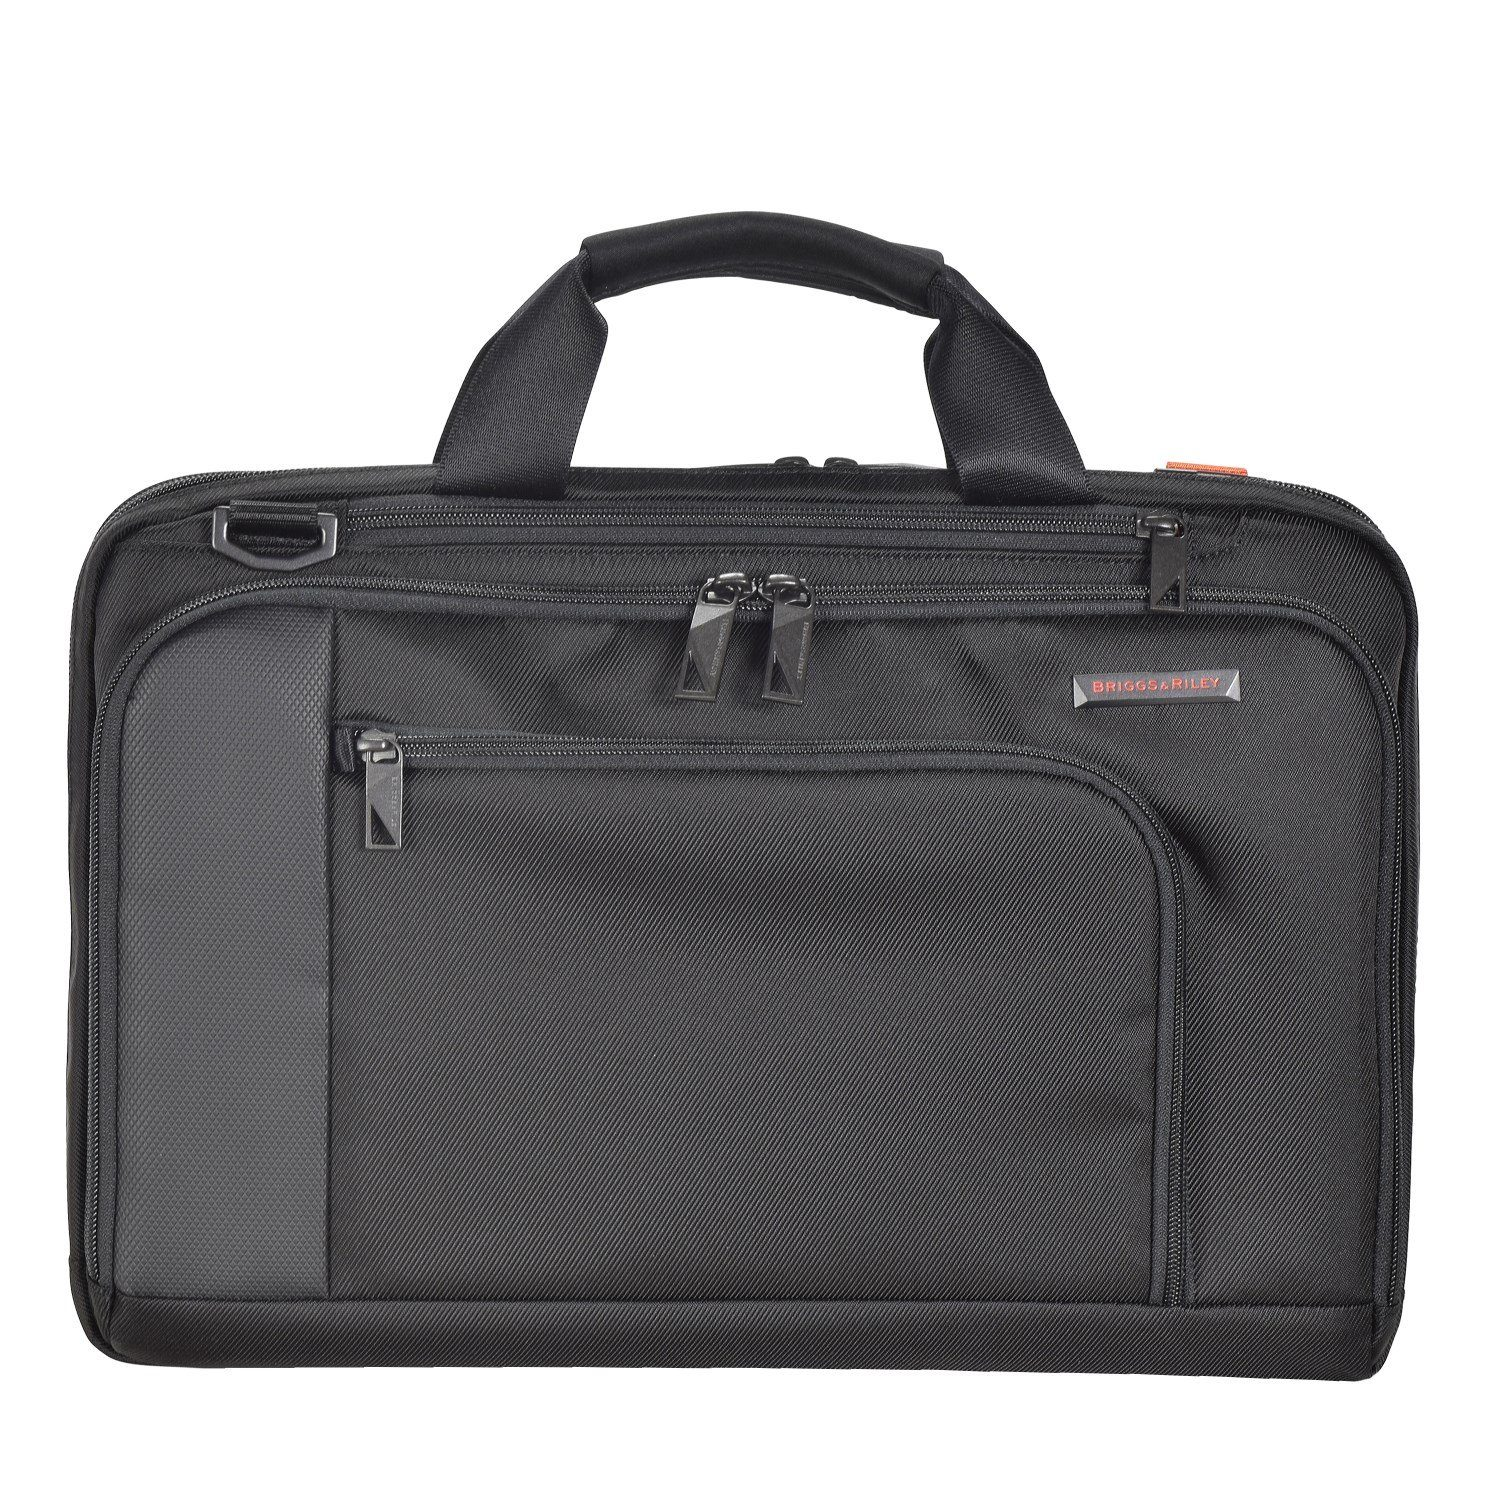 Briggs&Riley Verb Aktentasche I 41 cm Laptopfach